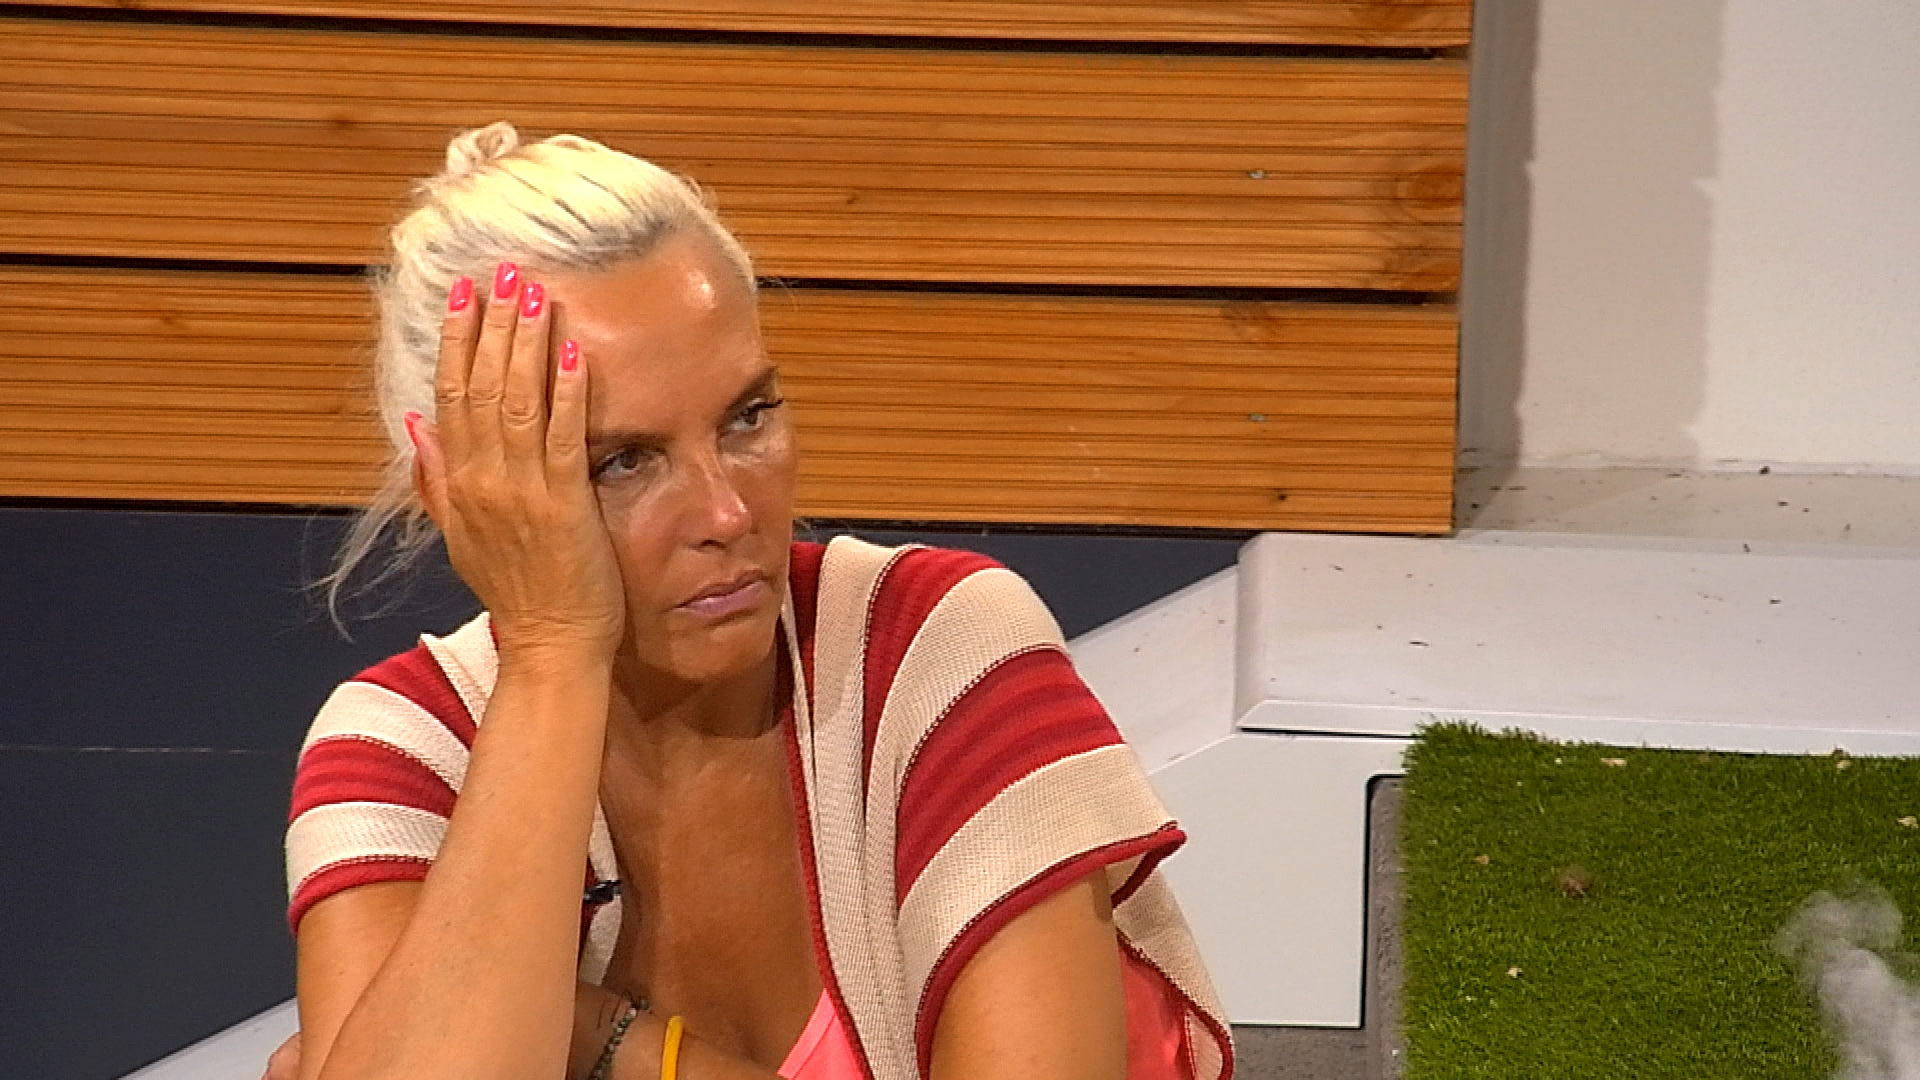 Promi Big Brother 2016 Tag 12 - Natascha ist besorgt